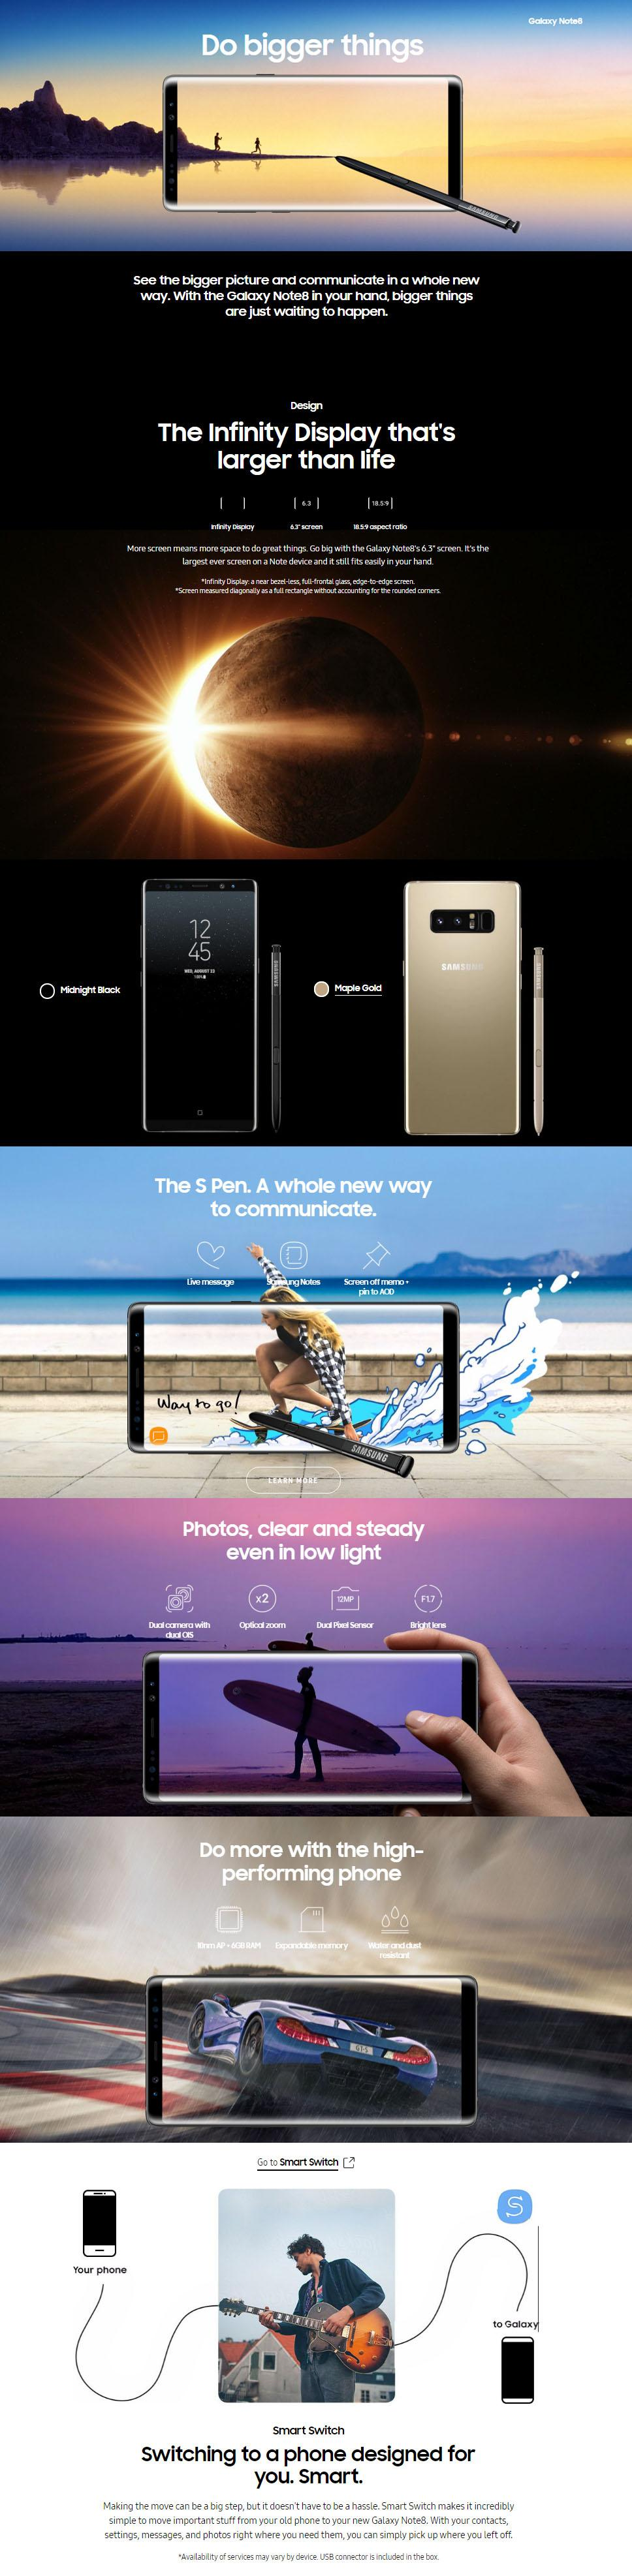 note 8 product descriptions.jpg